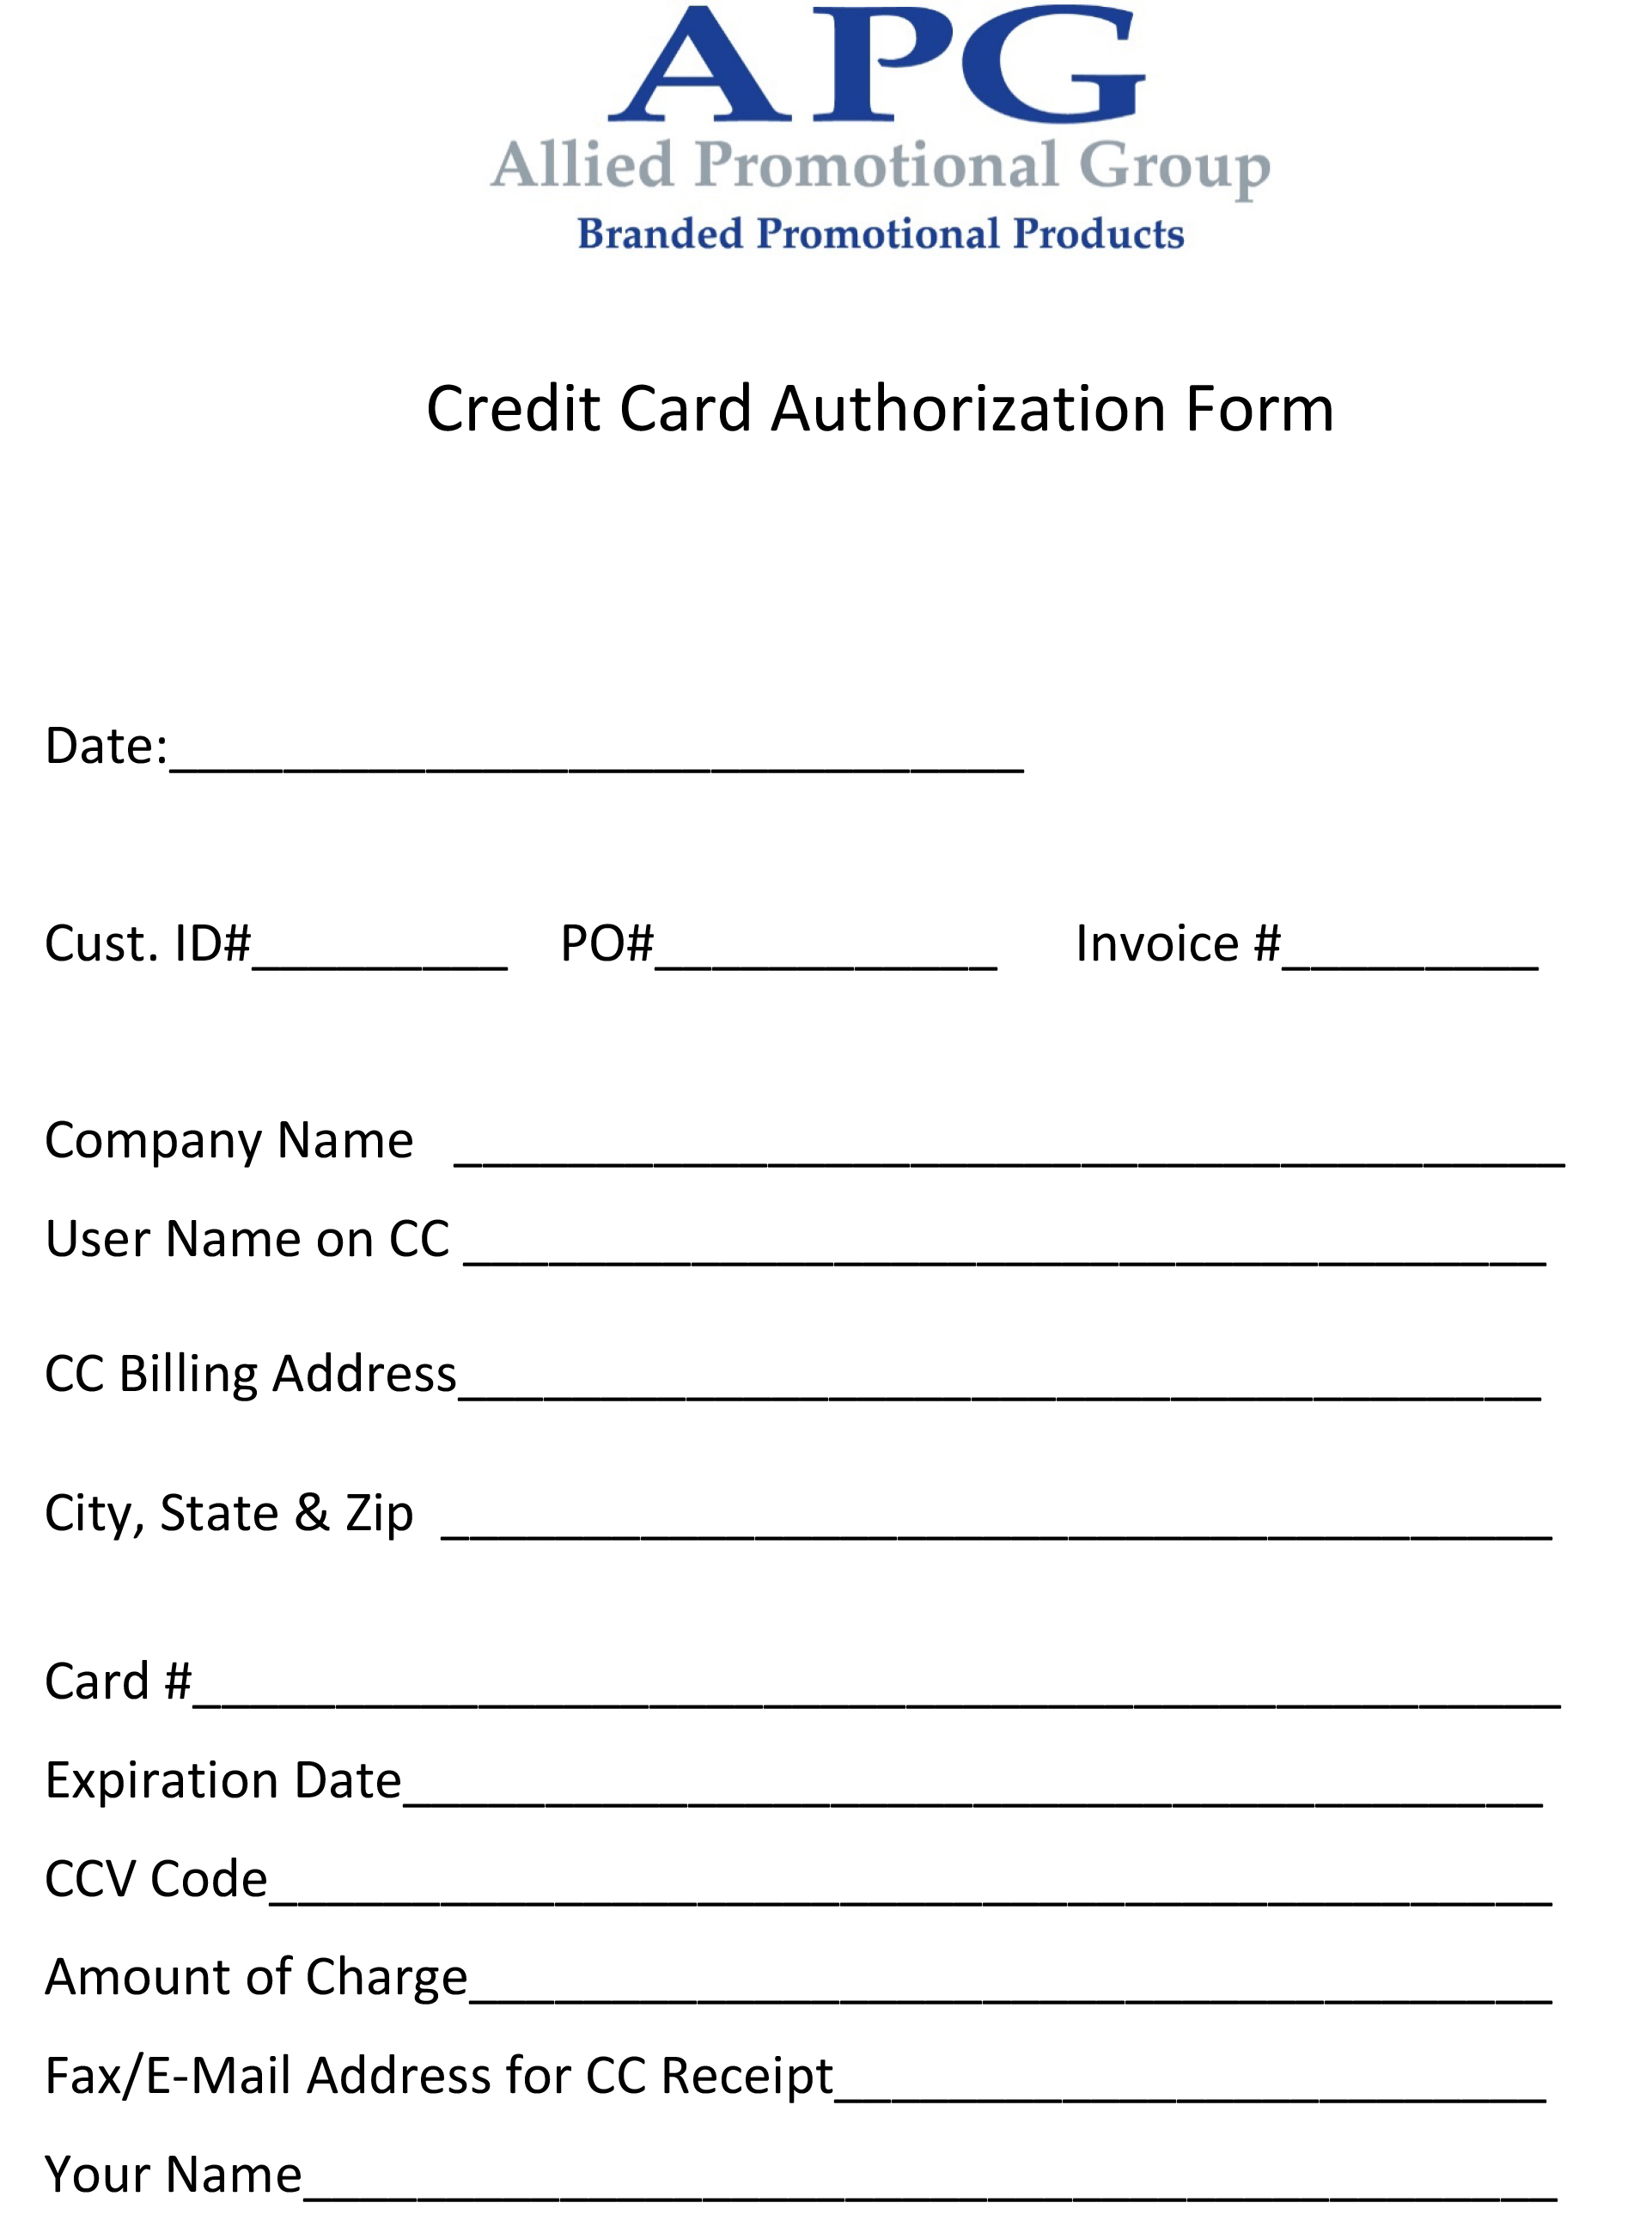 Download PDF Credit Card Authorization Form